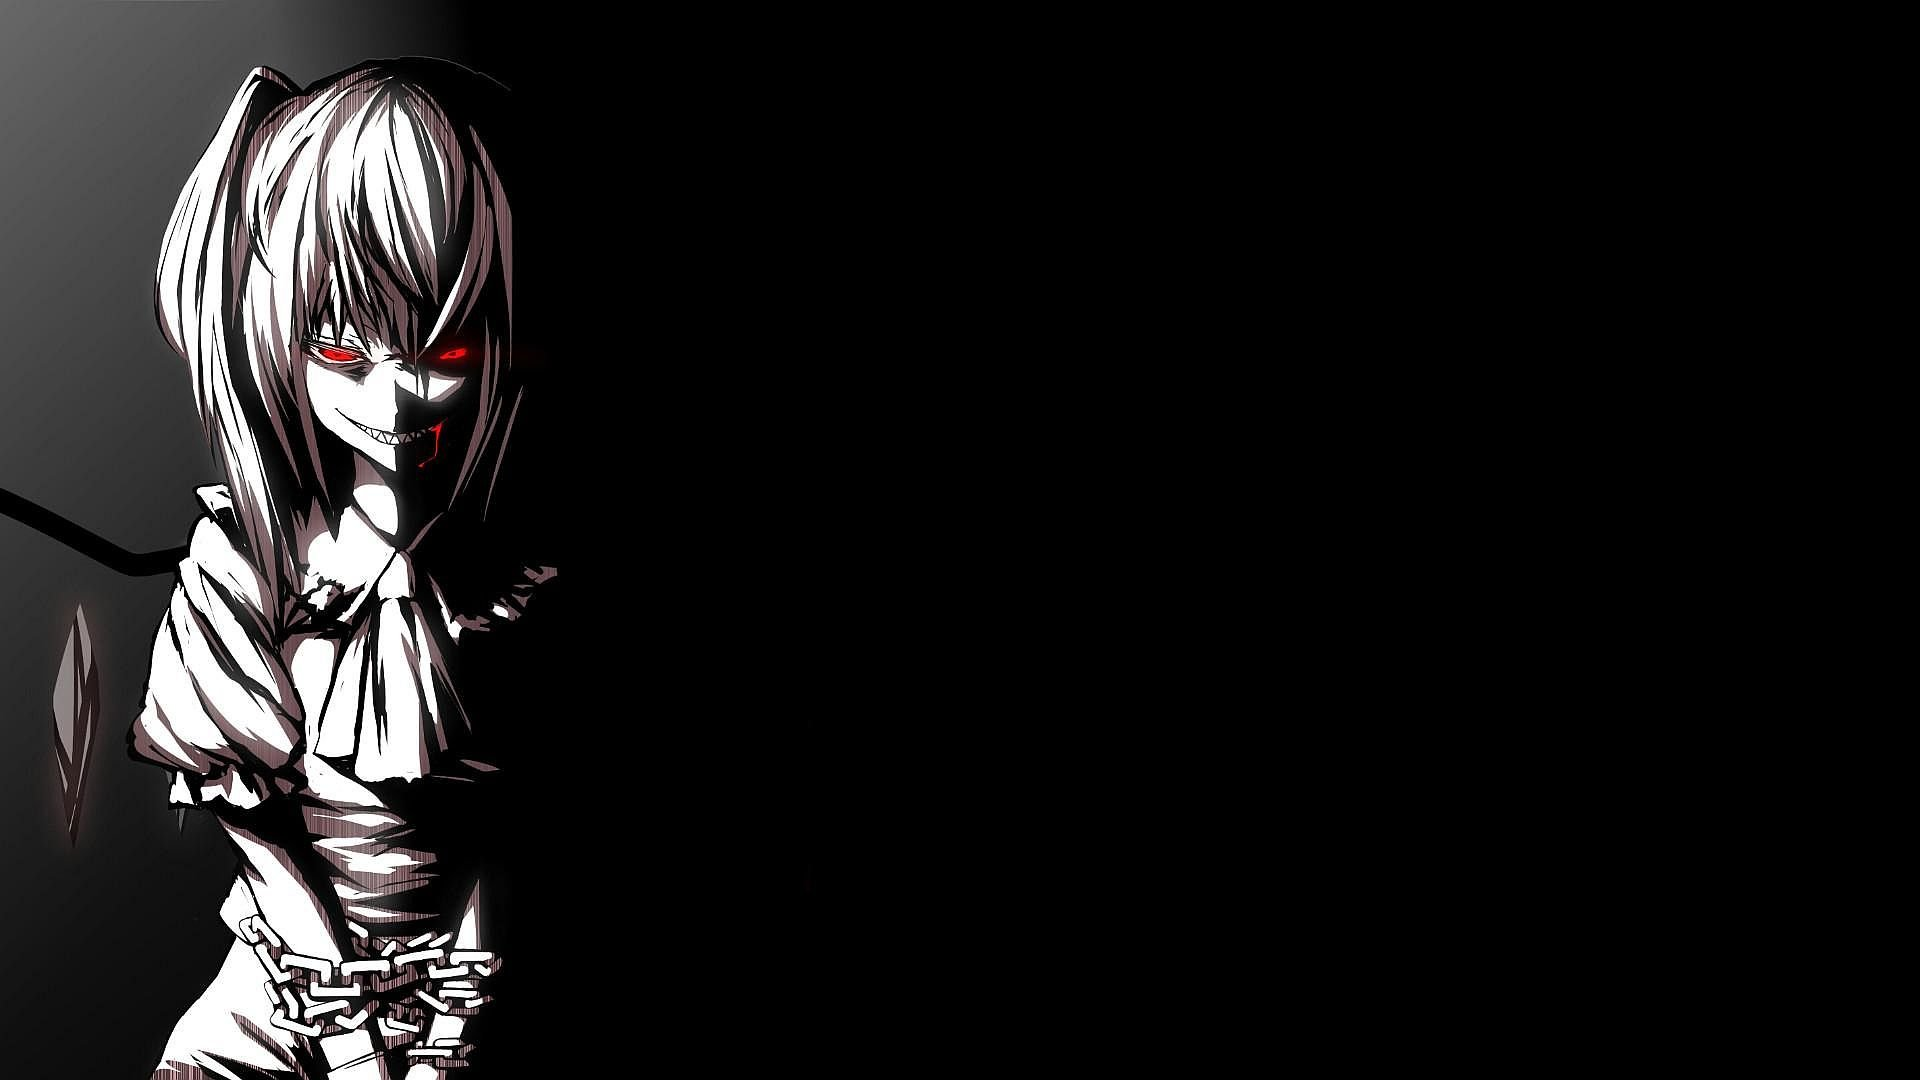 Anime wallpaper hd 1920x1080 wallpapersafari - Anime girl full hd ...